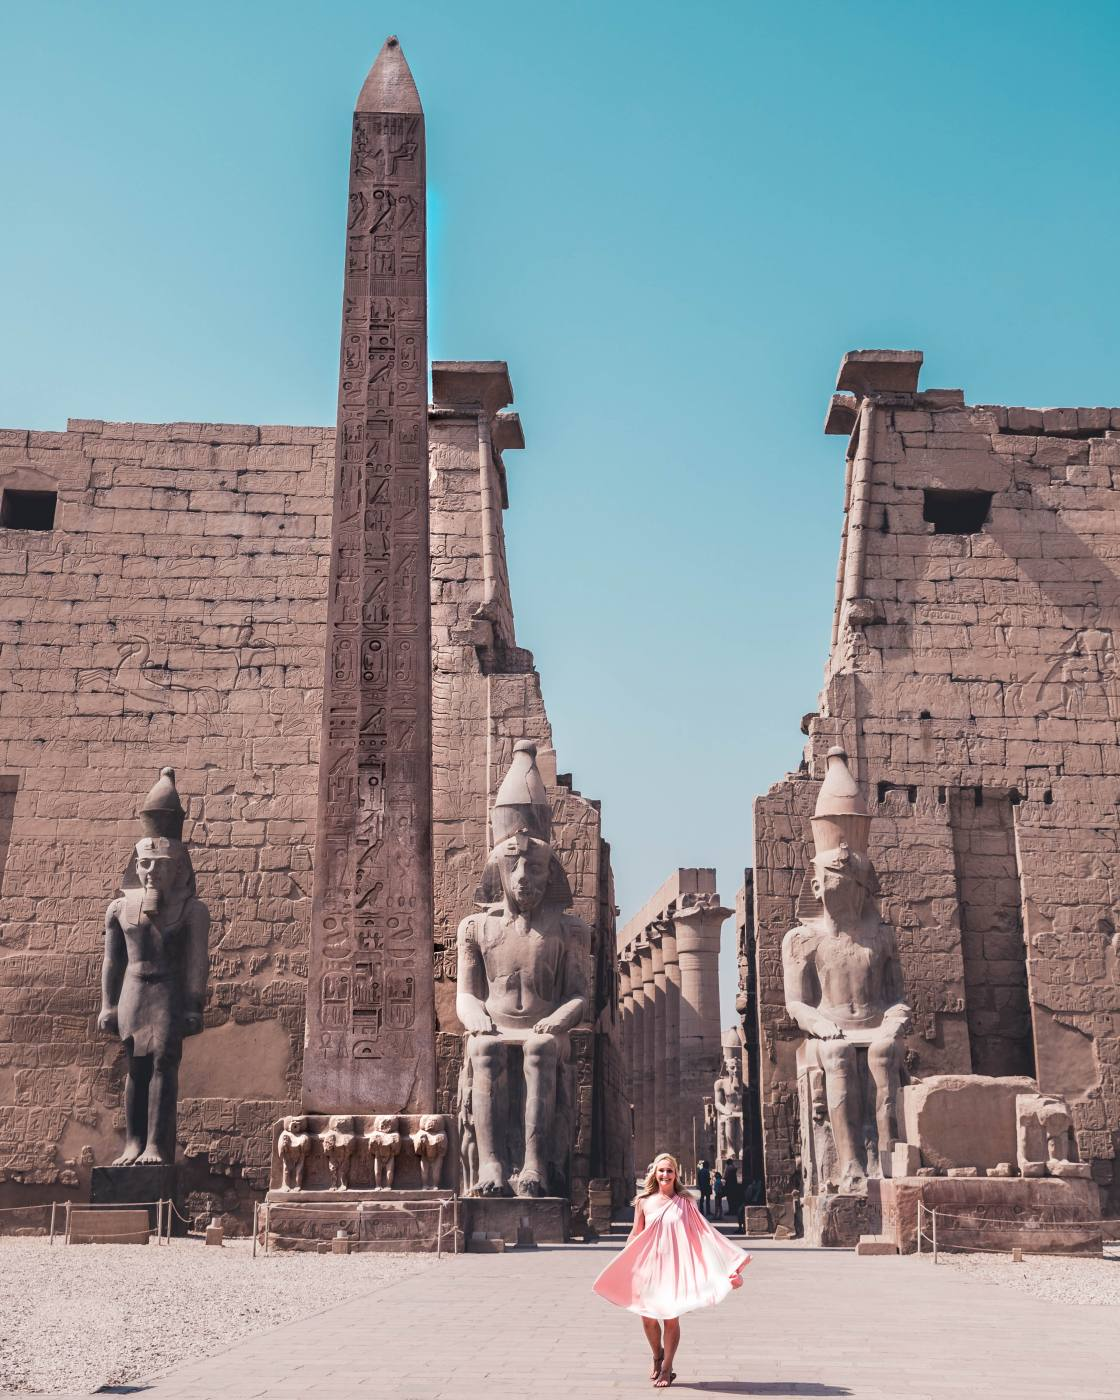 The Most Instagrammable places in Egypt